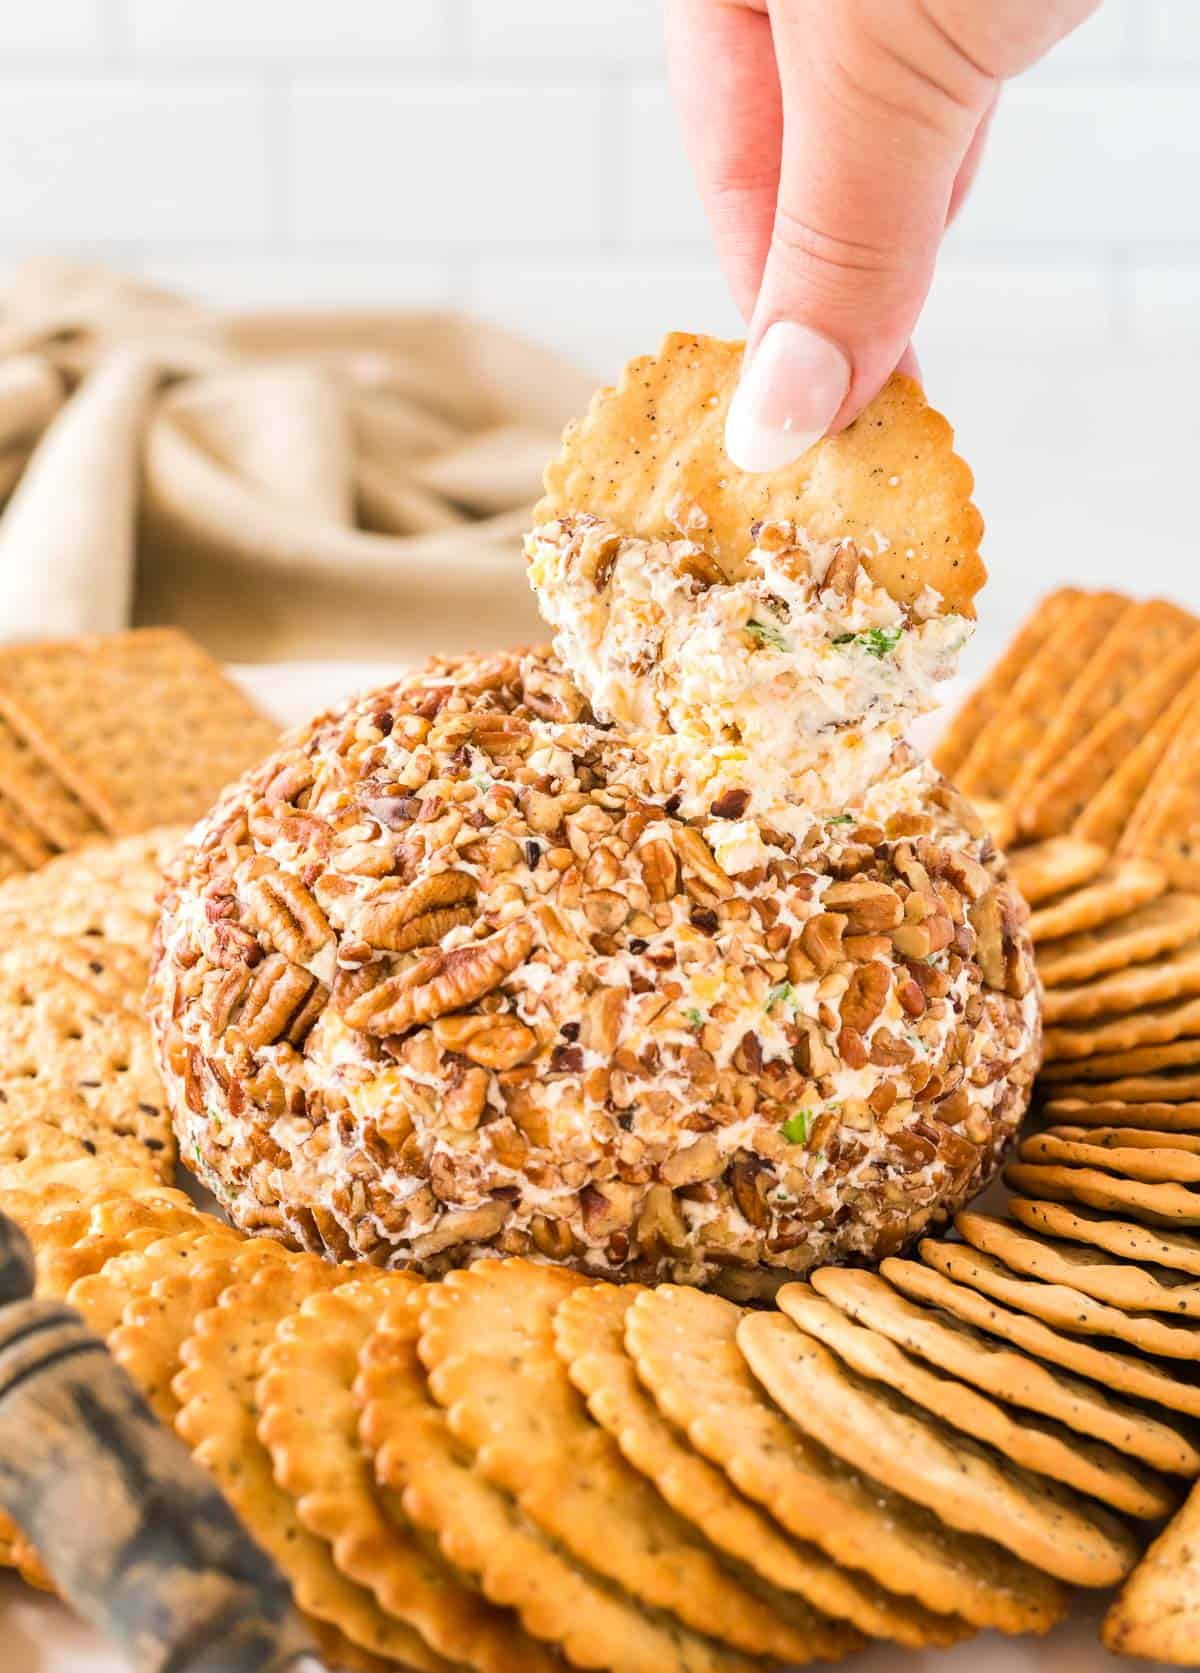 holding a cracker dipped in cheese ball